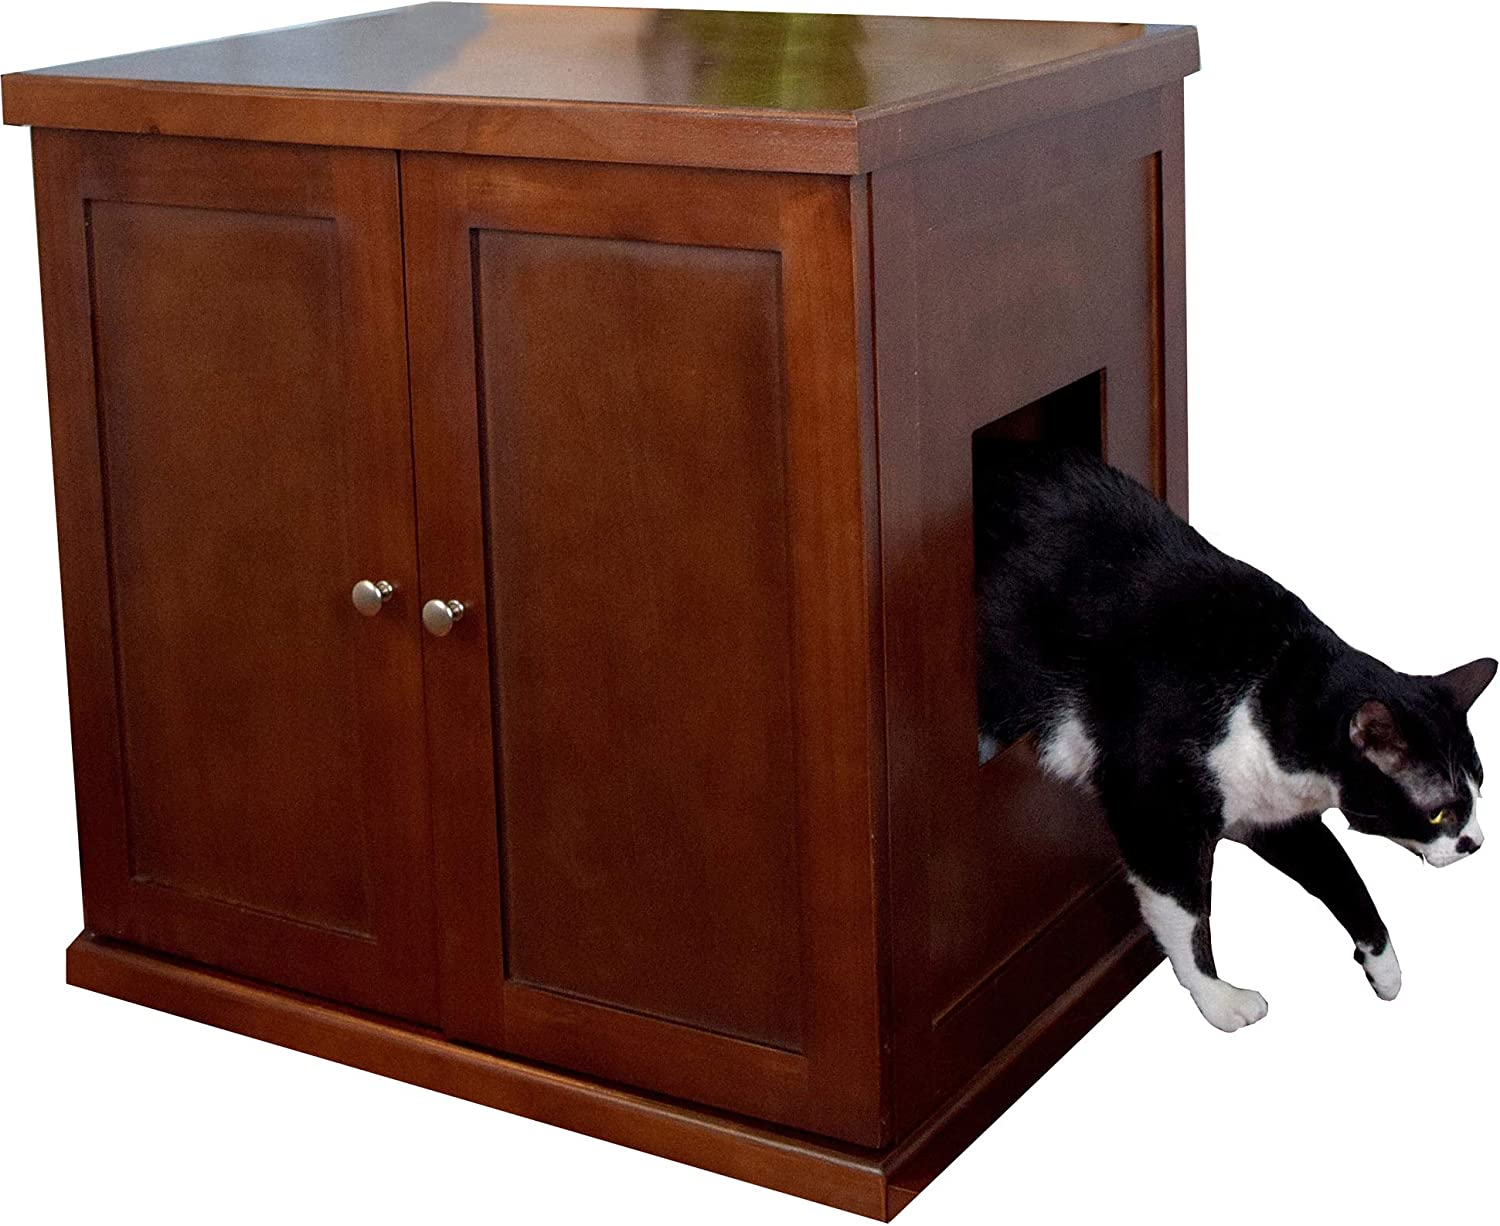 The Refined Feline Refined Litter Box. Buy it at Amazon